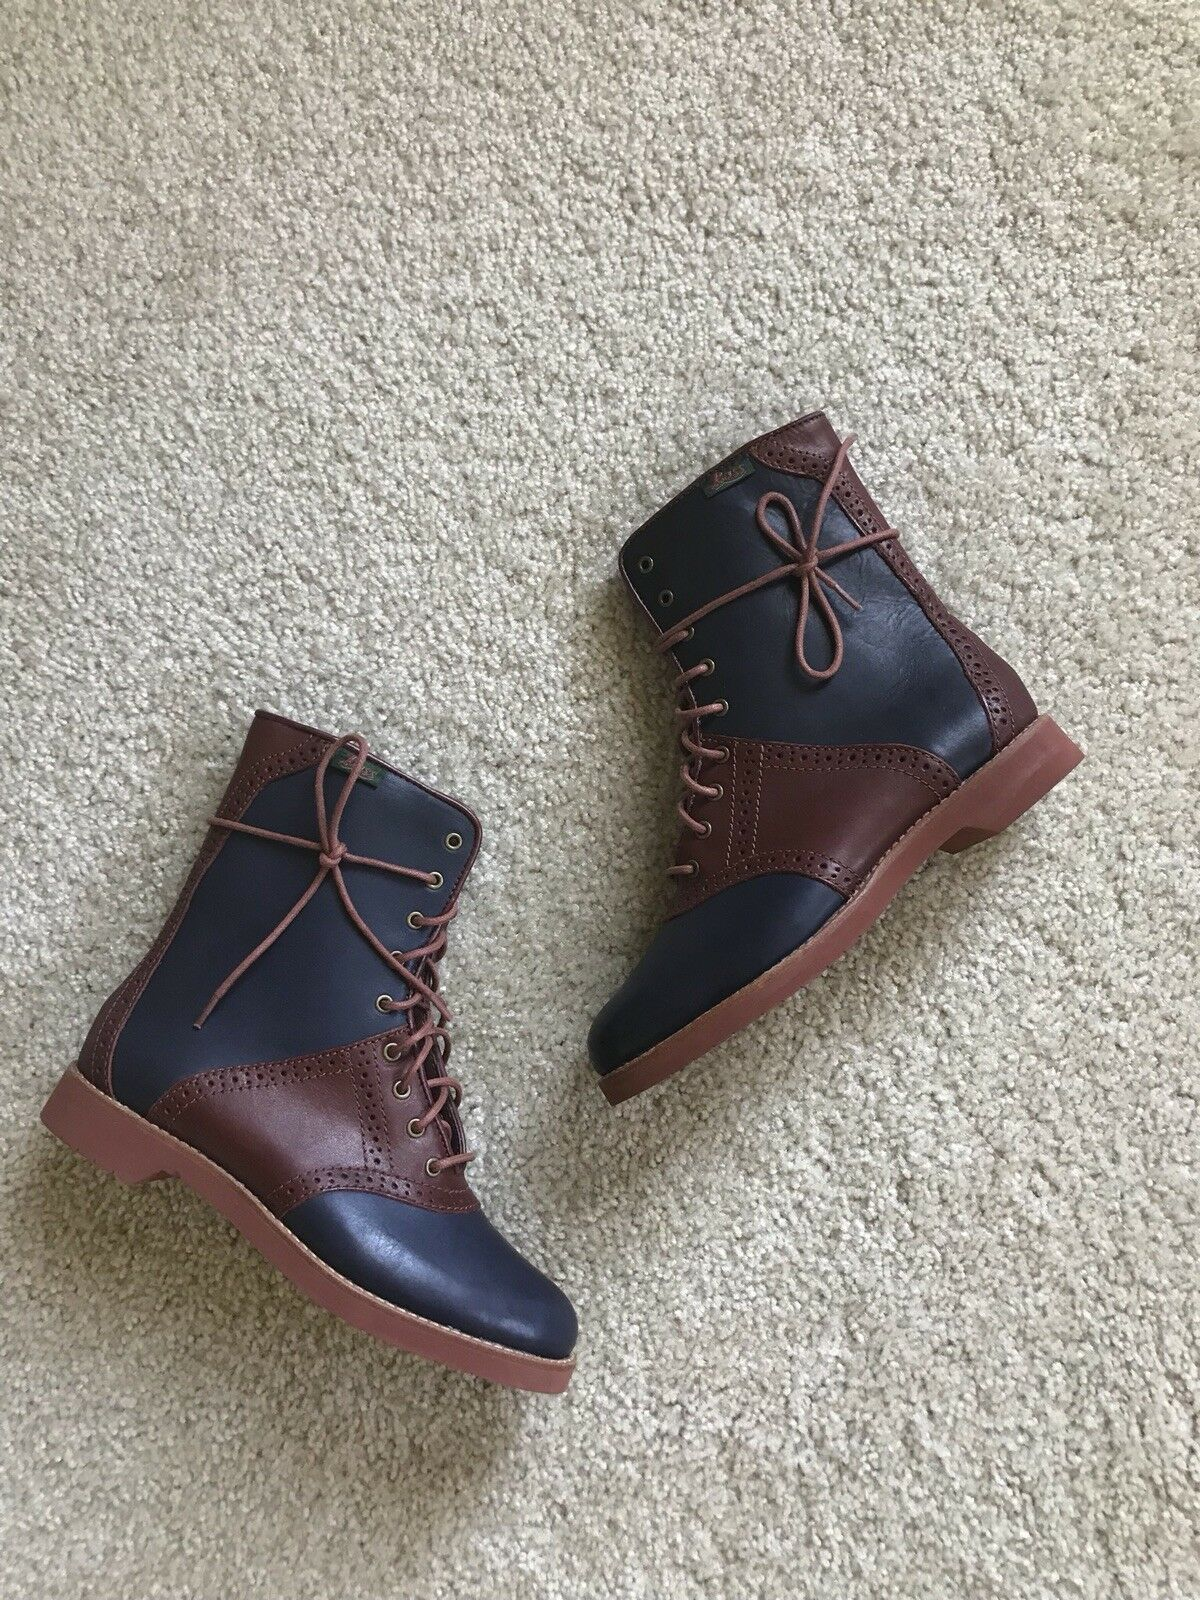 Bass Navy And Maroon Leather Boots, Size 6